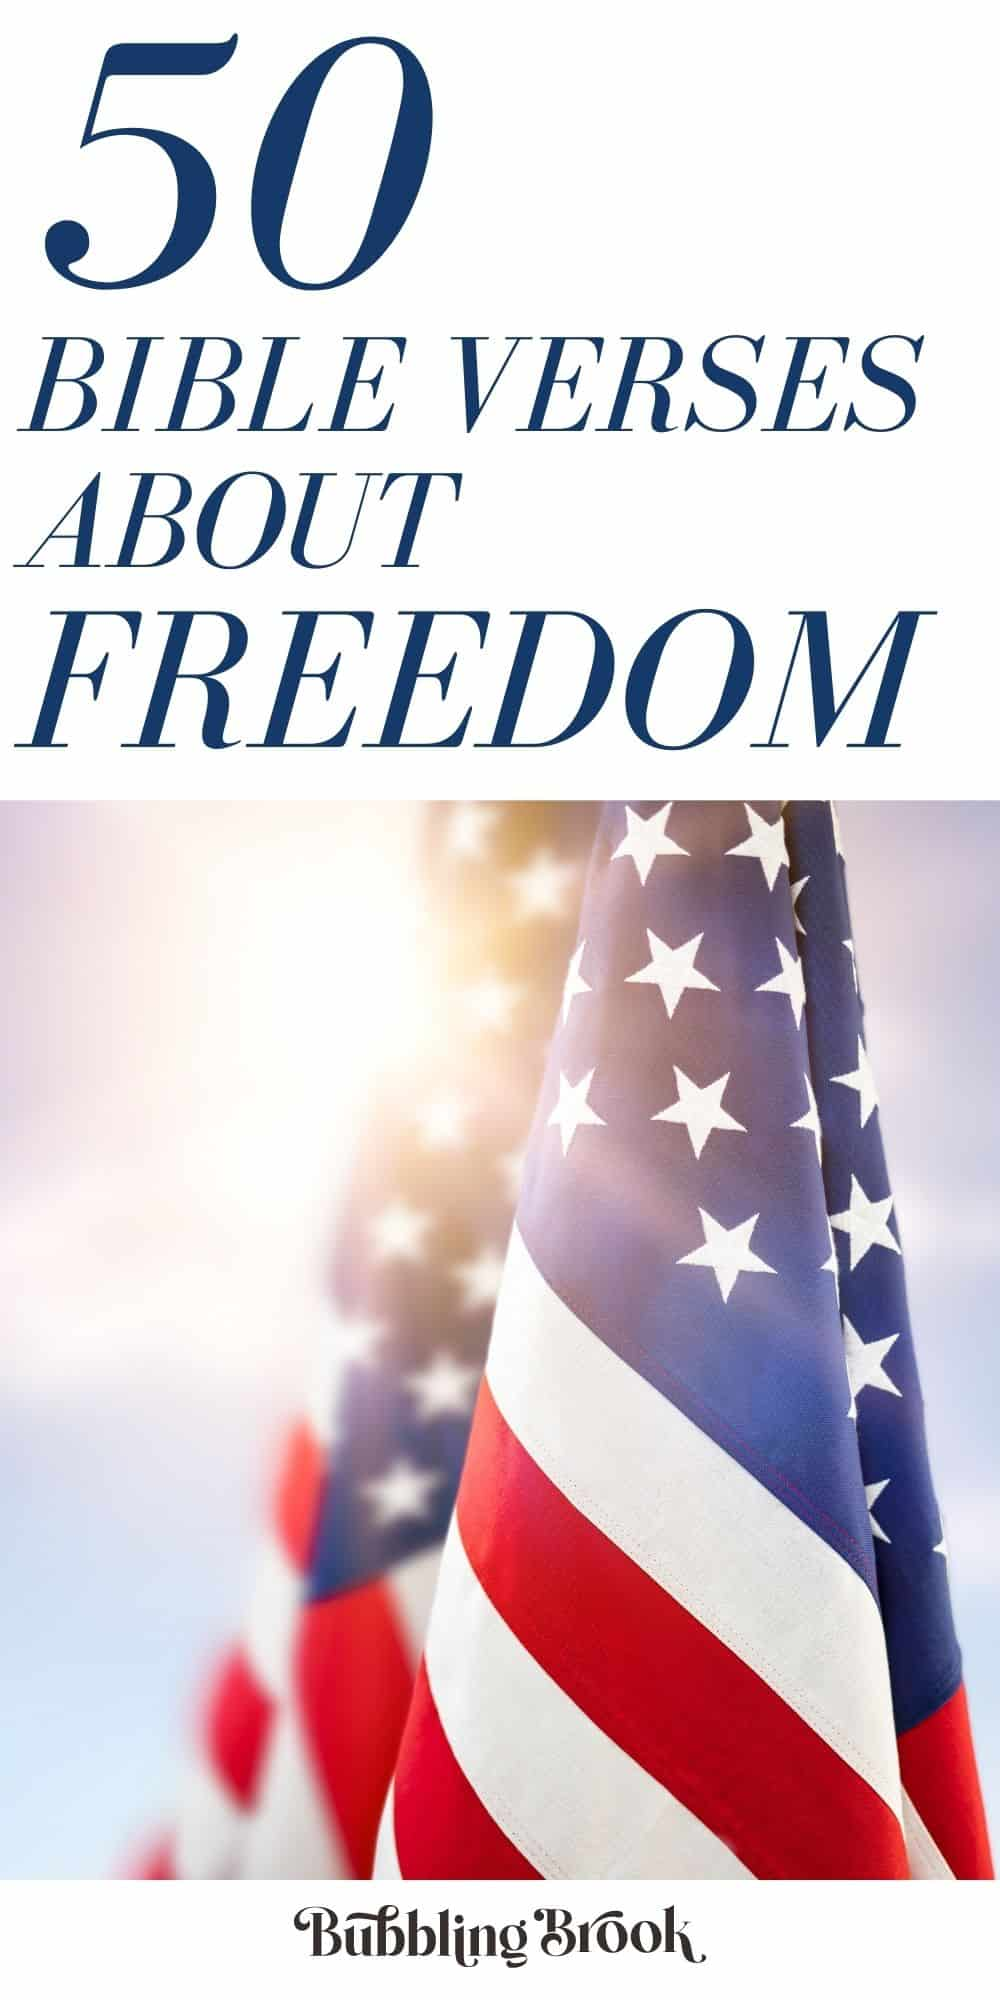 Bible verses about freedom for USA, July 4th, Independence Day, etc